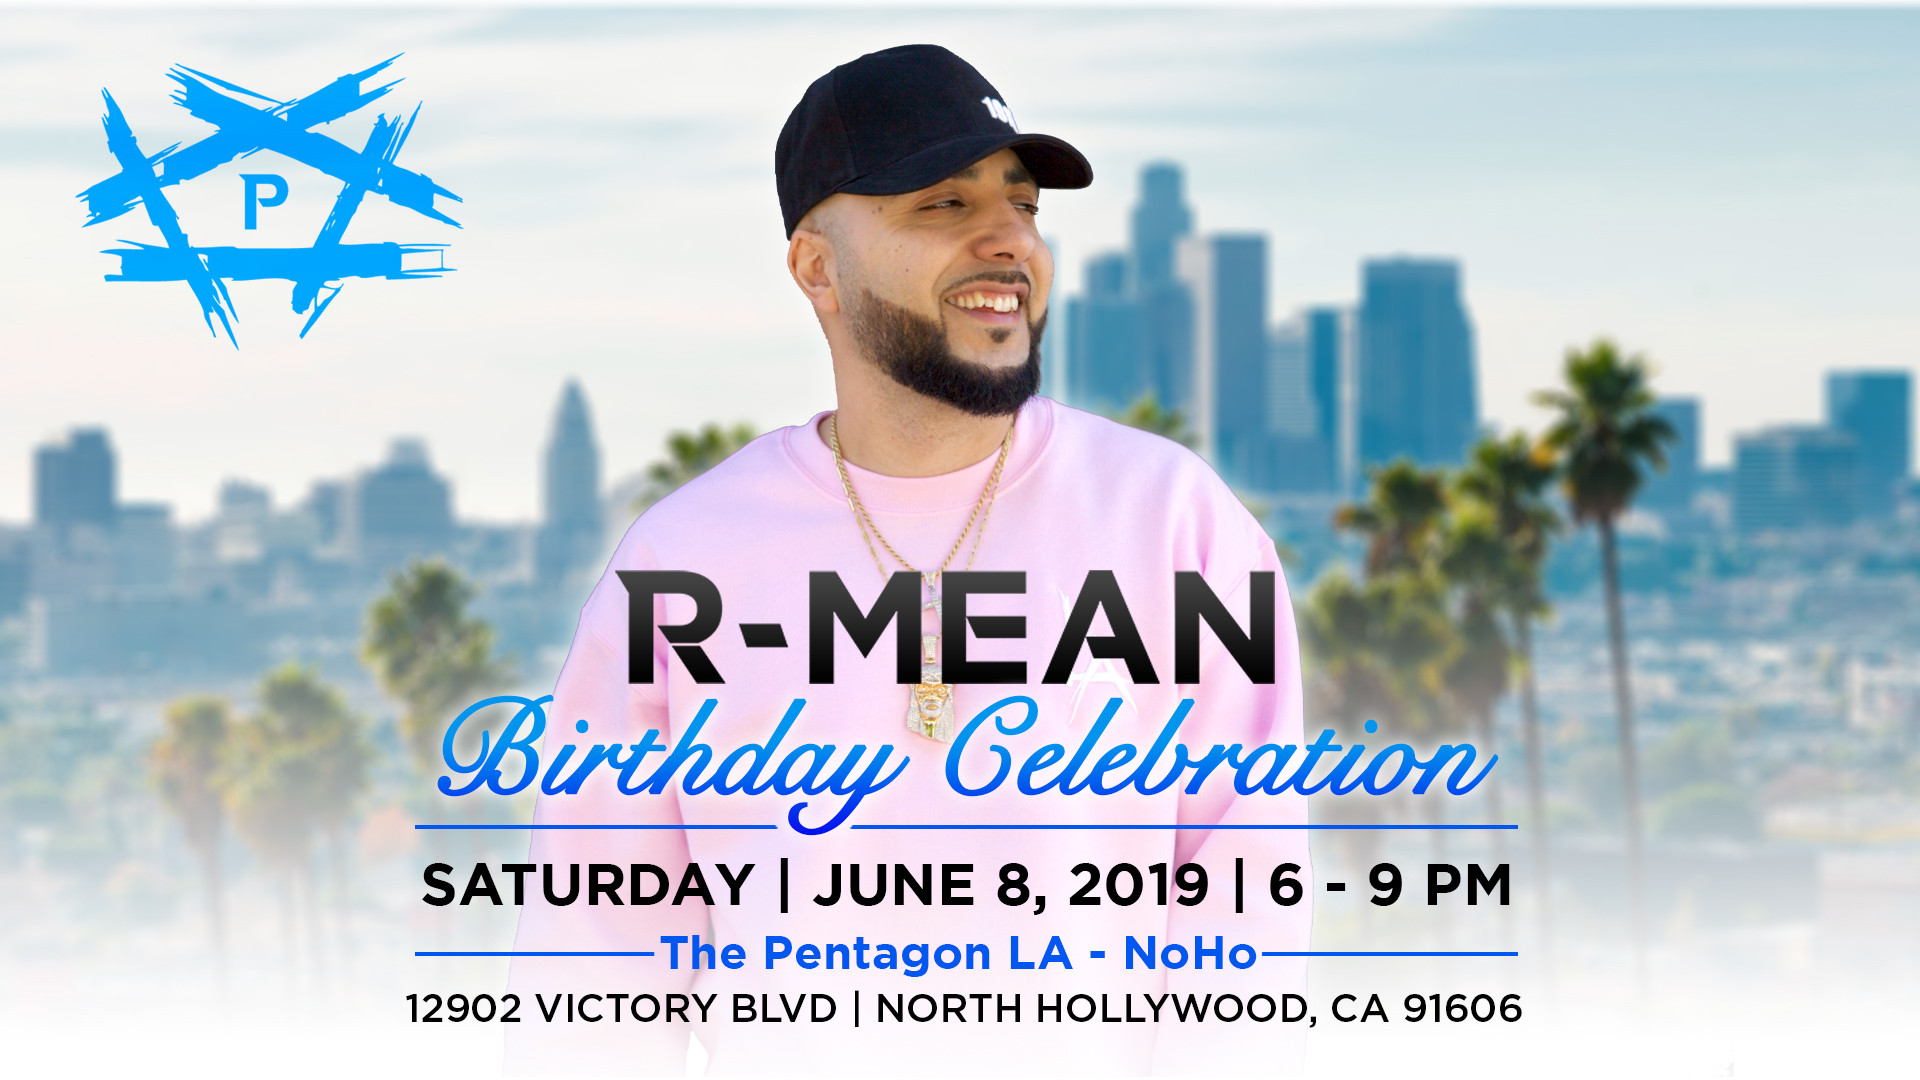 The Pentagon LA R-Mean Birthday Celebration